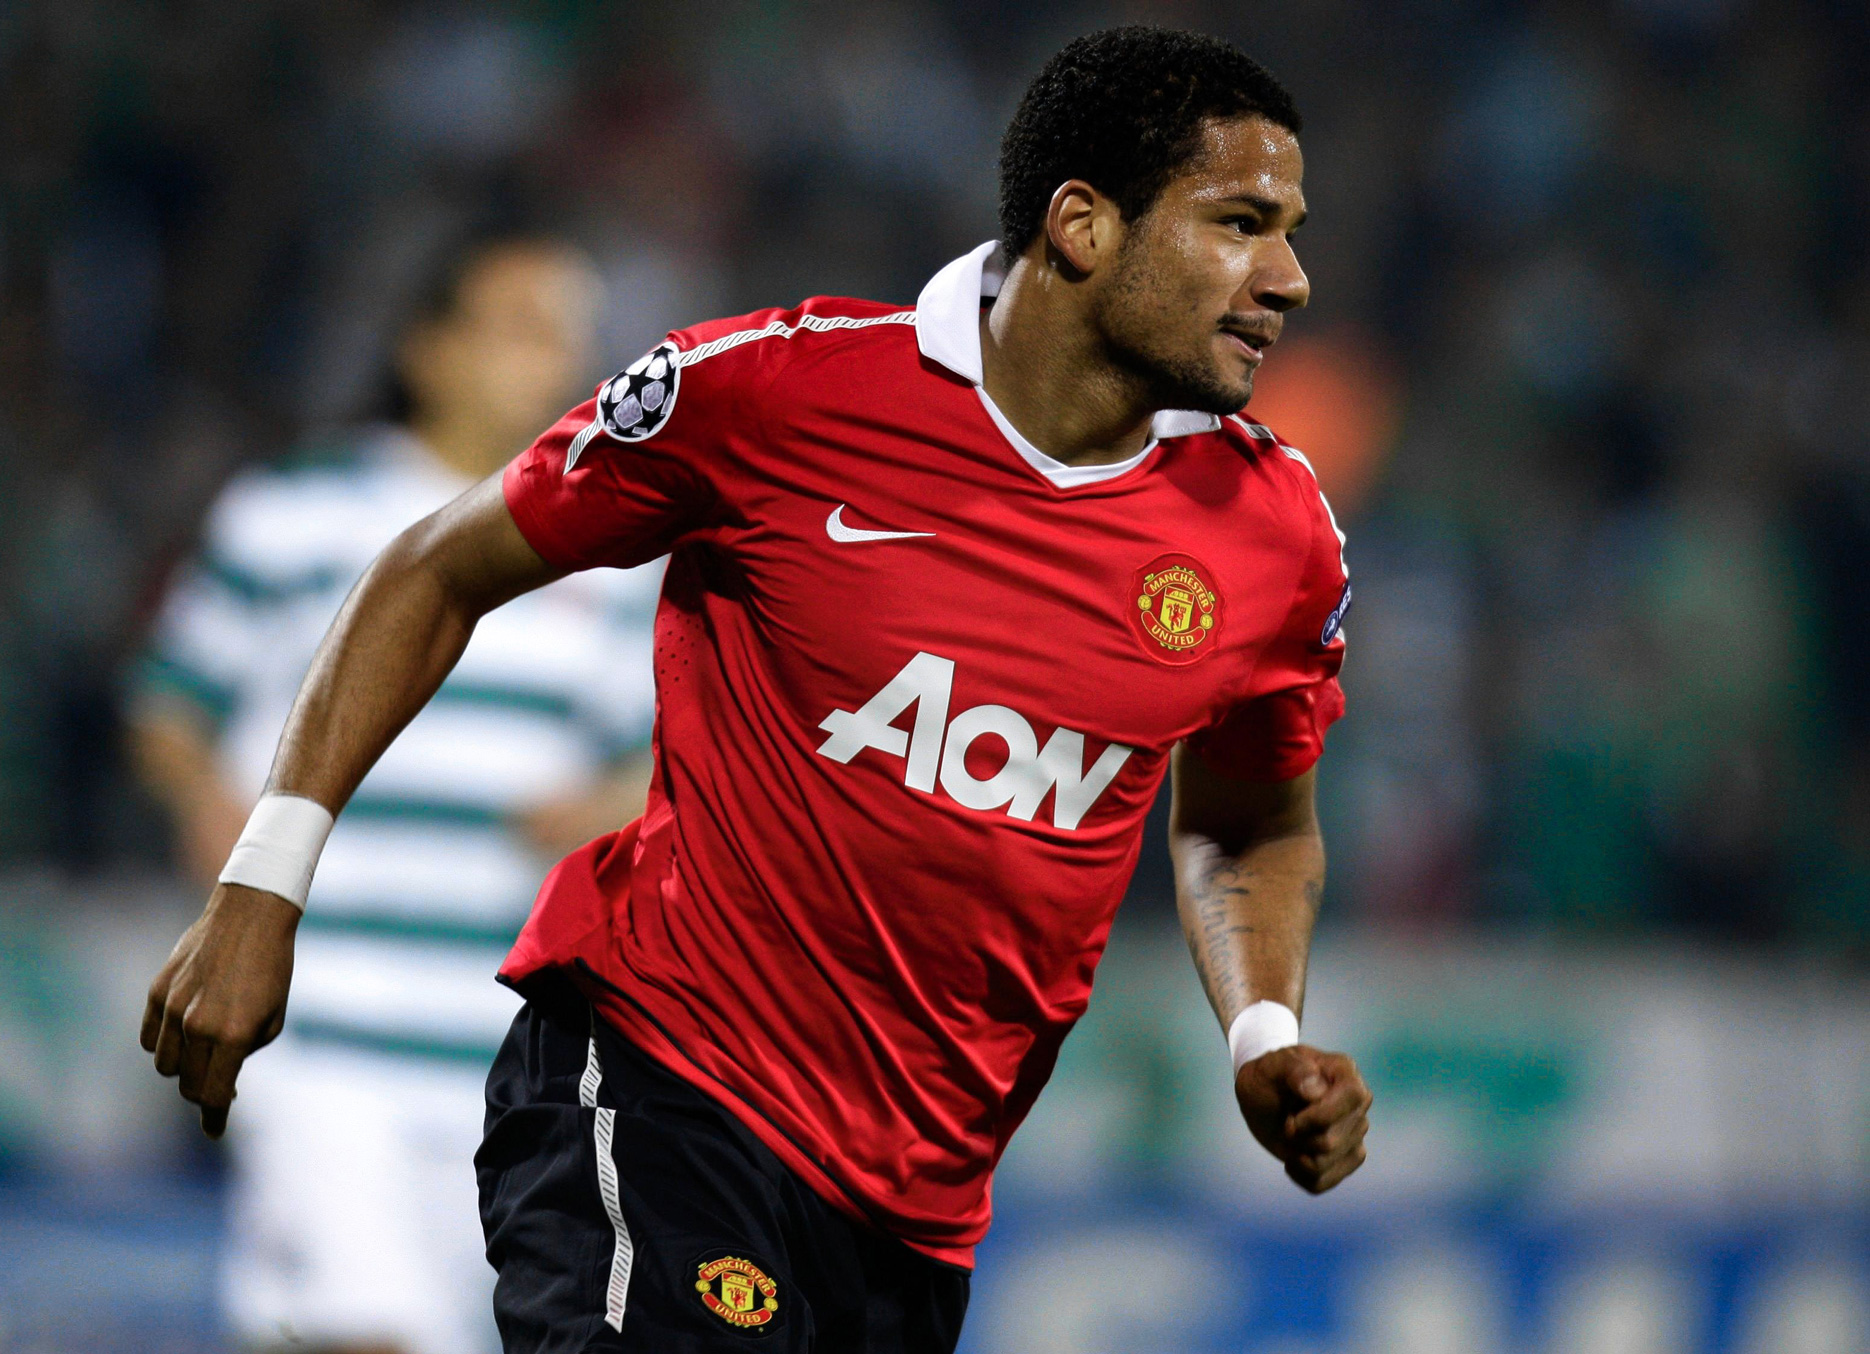 Bebe playing for Manchester United. Source: thesefootballtimes.co